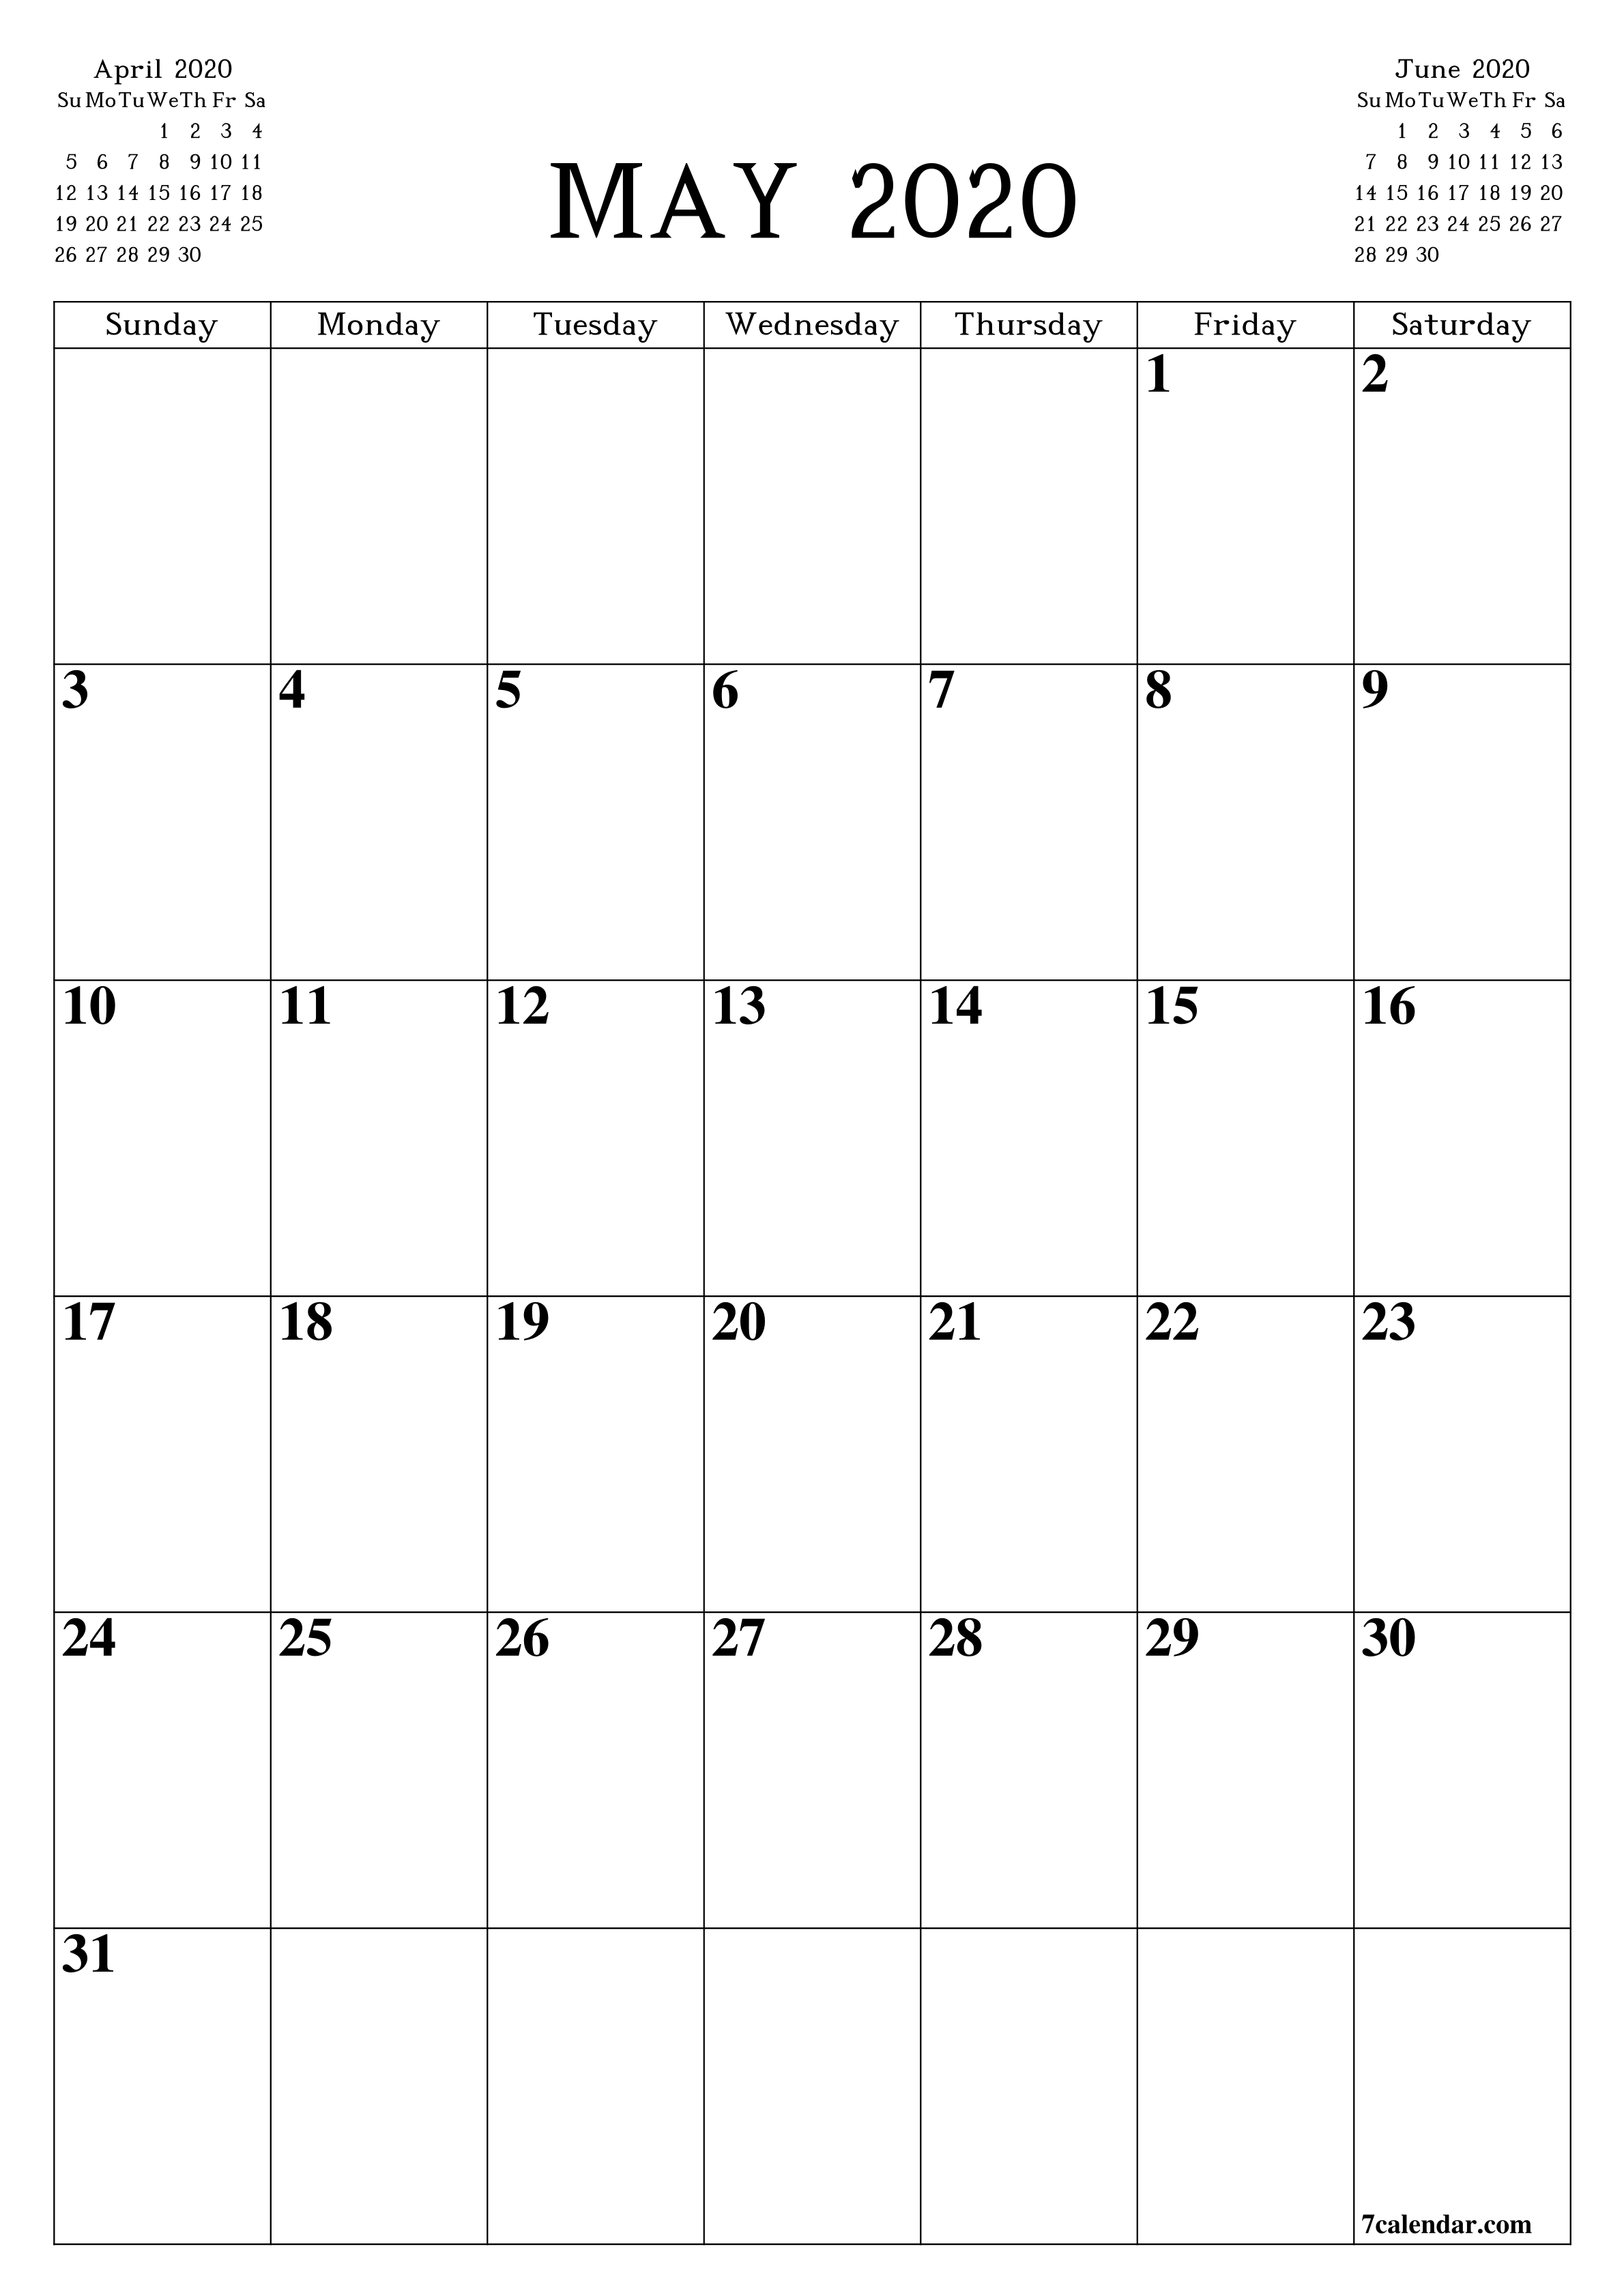 Free Printable Blank Monthly Calendar And Planner For May How Can I Print Calendar To Fill In